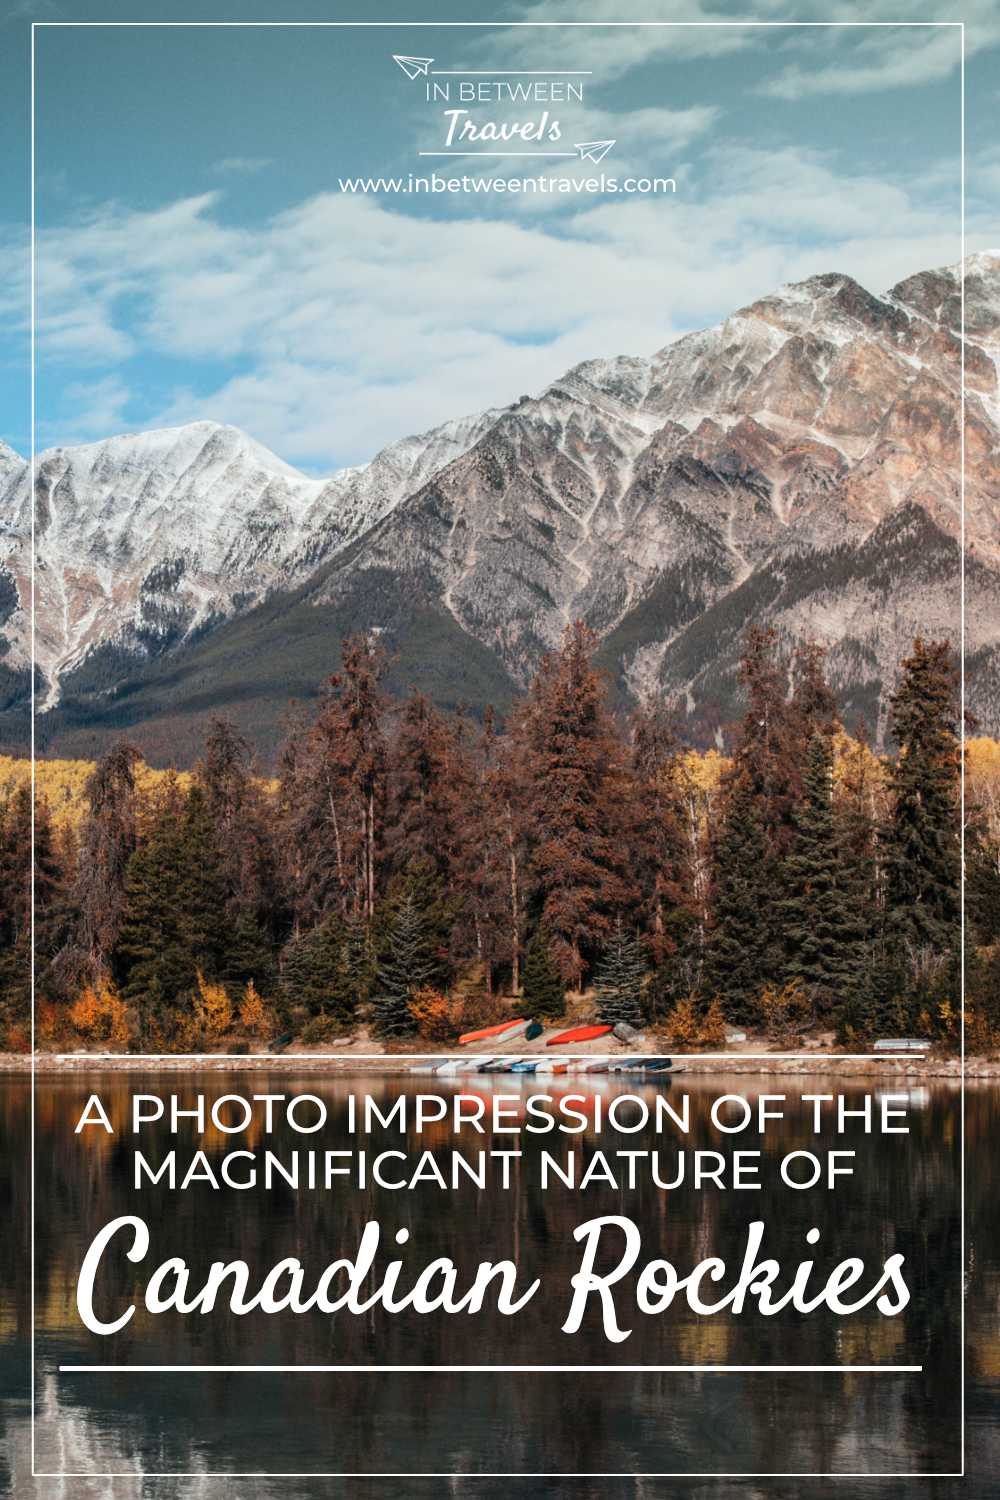 Canada's nature in pictures